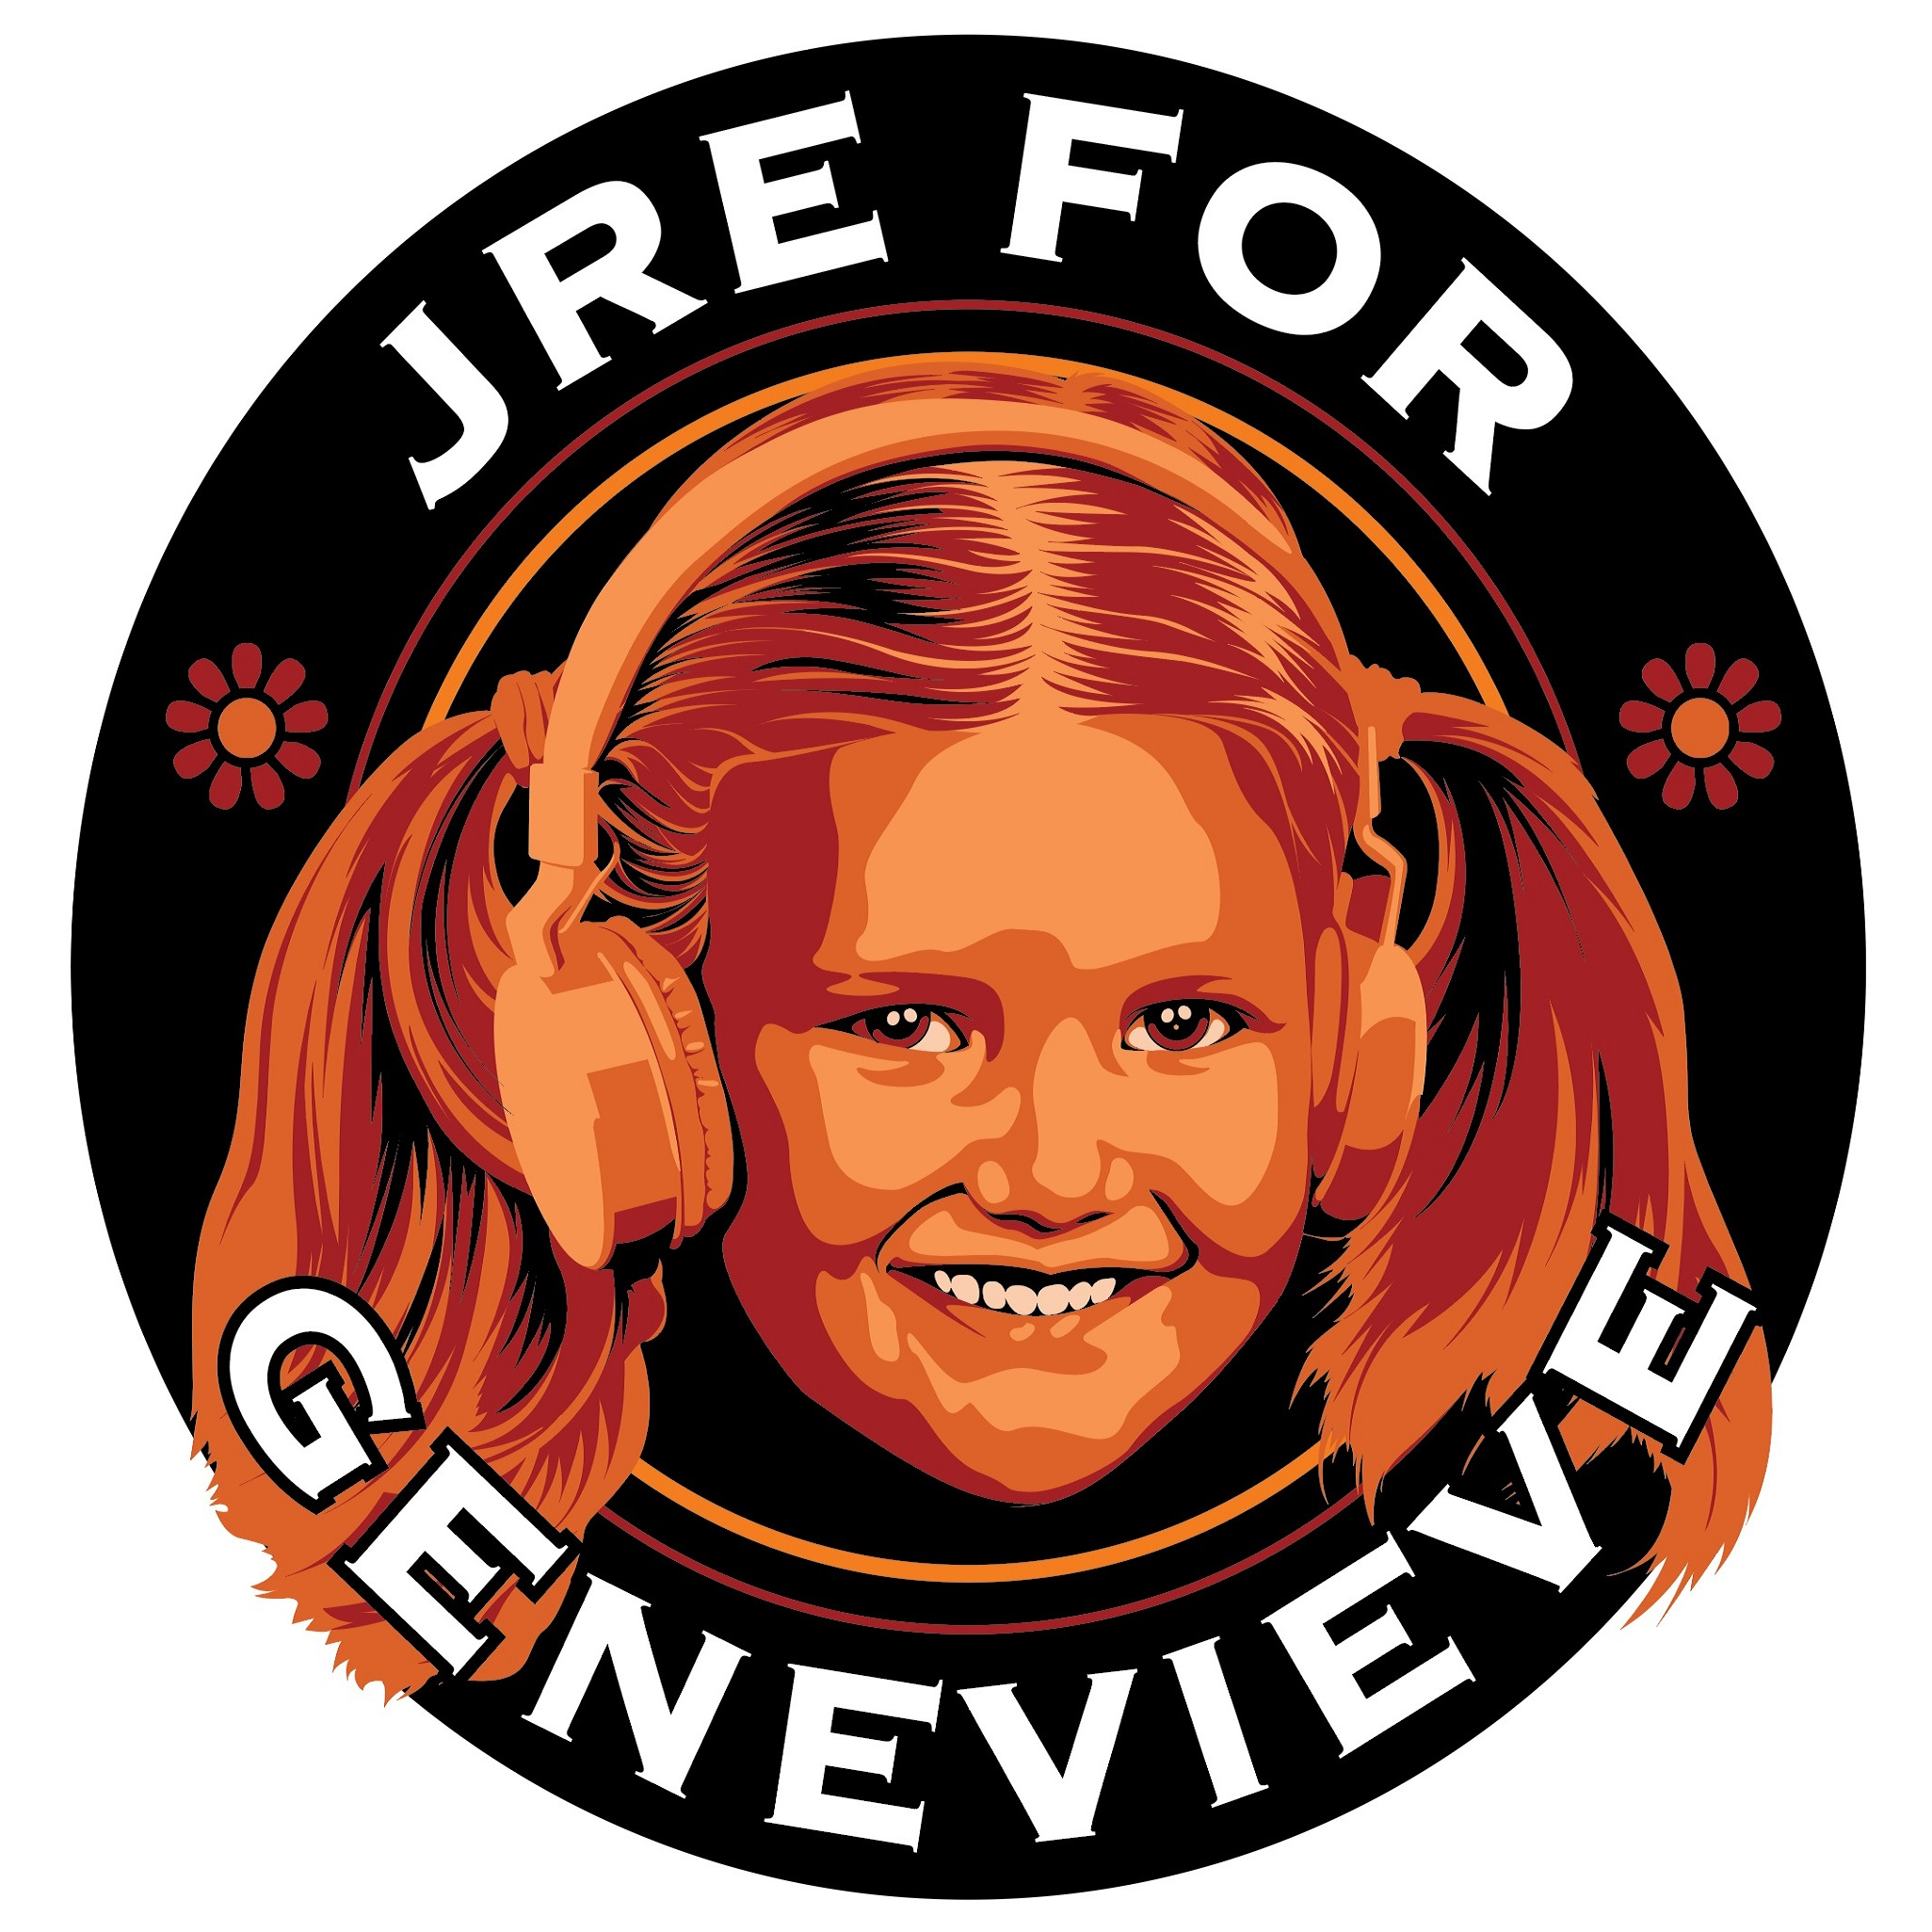 JRE for Genevieve